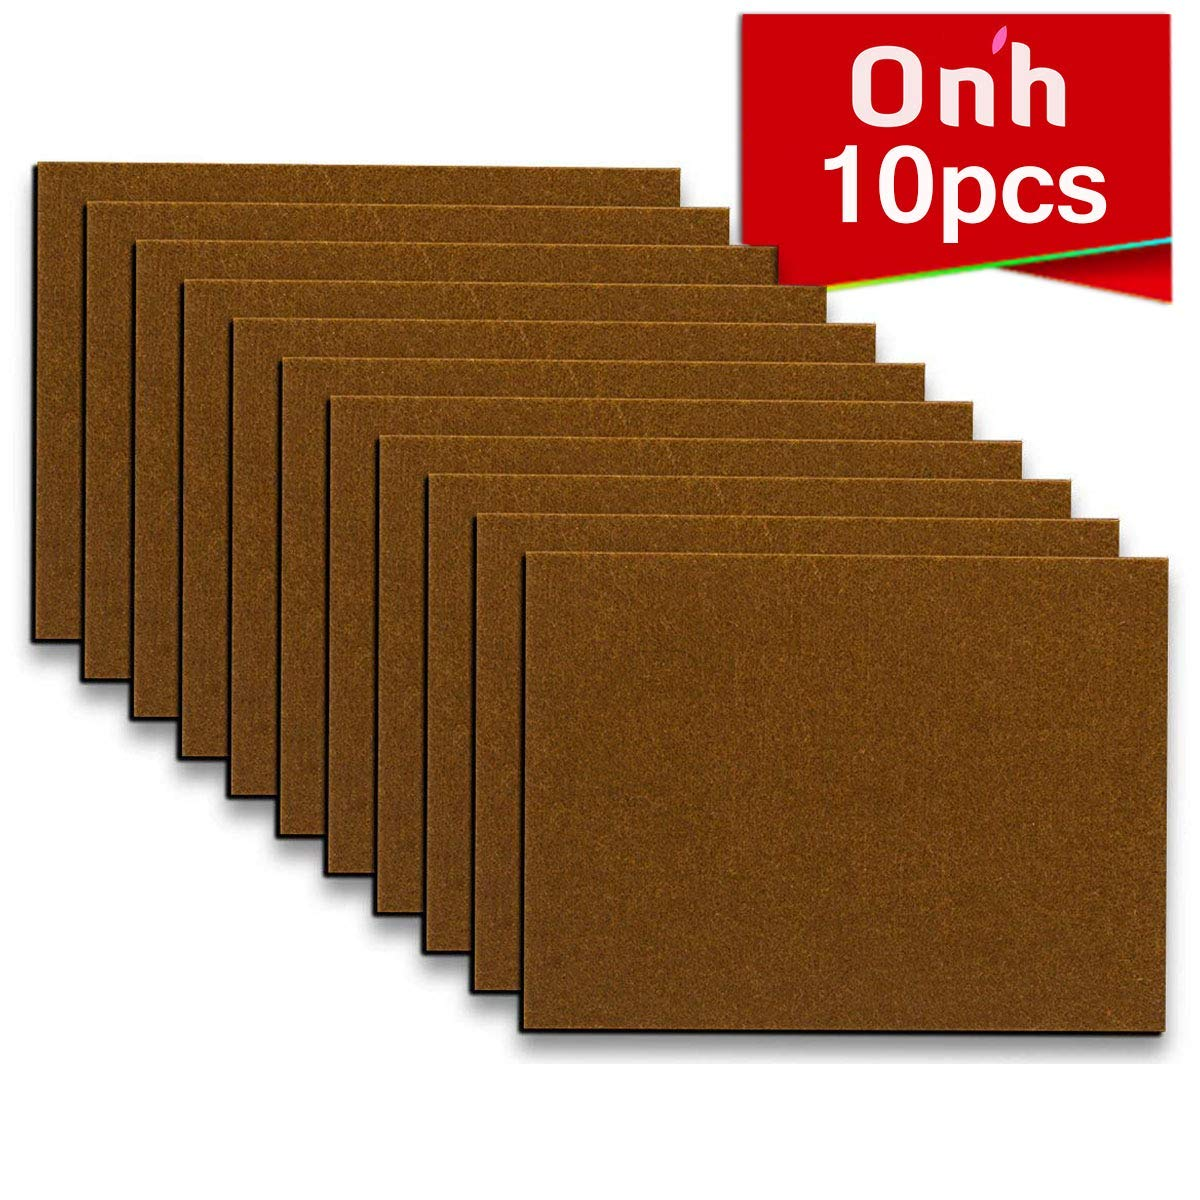 "Furniture Pads - 10 Pack ON'H Self-Stick Felt Furniture Pads with 3M Tapes Hardwood Floors Protectors – 8"" x 6"" x 1/5"" Sheet Cut into Any Shape – Brown"